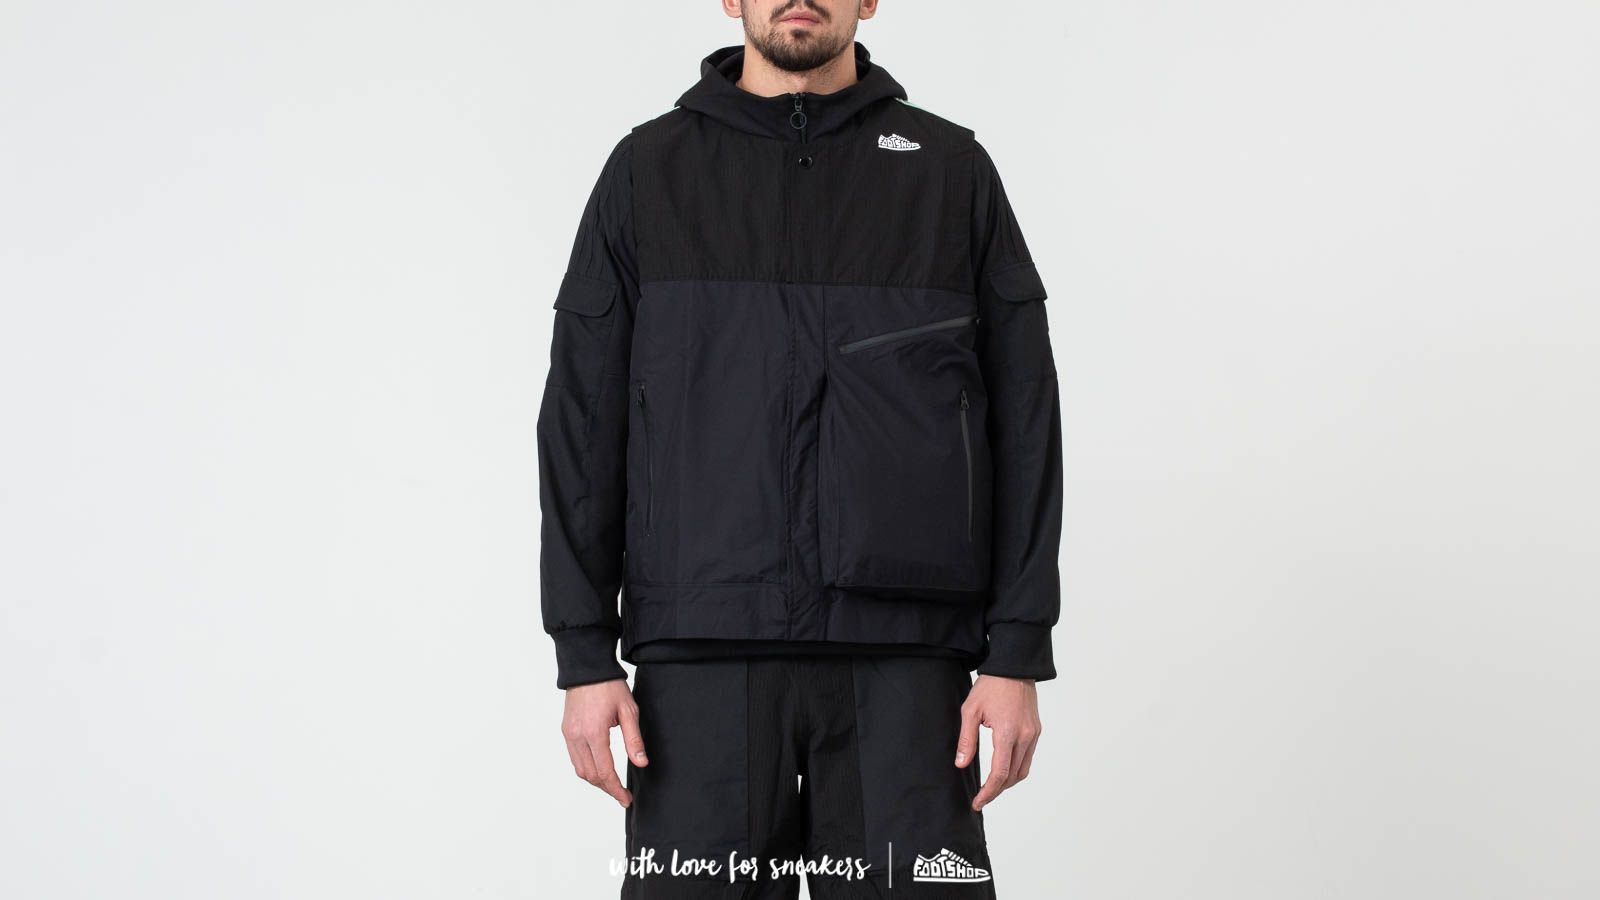 Jackets and Coats adidas Consortium x Footshop ACMON Gore-Tex Jacket Black